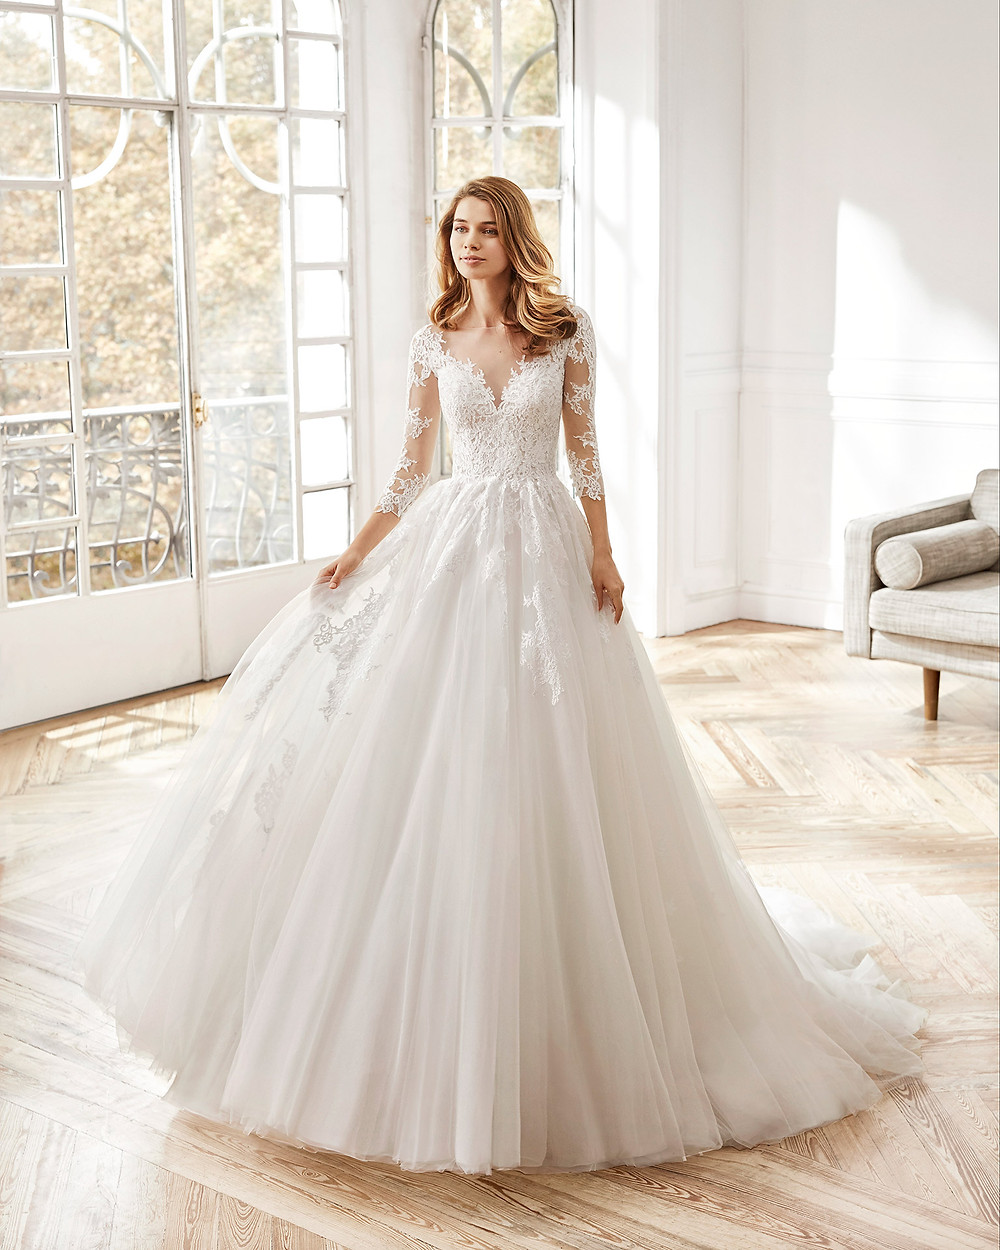 An Aire Barcelona 2020 lace and tulle princess ball gown wedding dress with long illusion sleeves and an illusion neckline